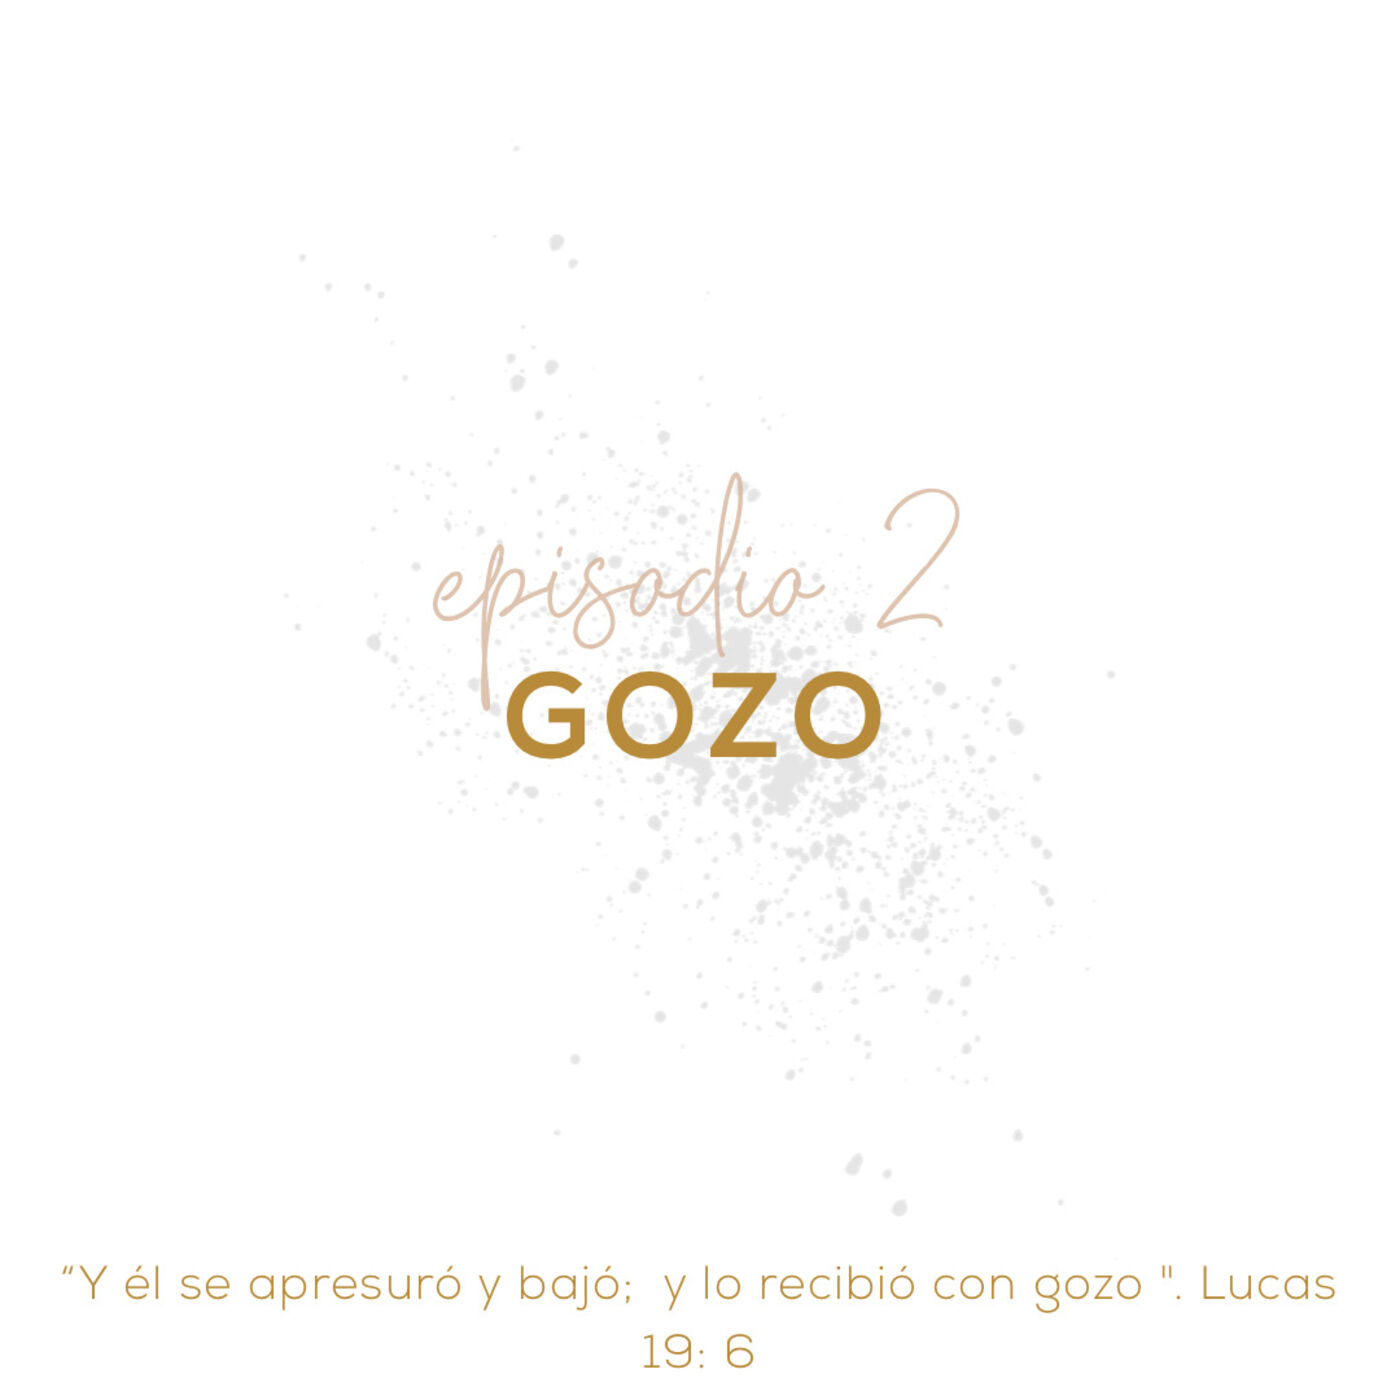 Episodio 2: Gozo